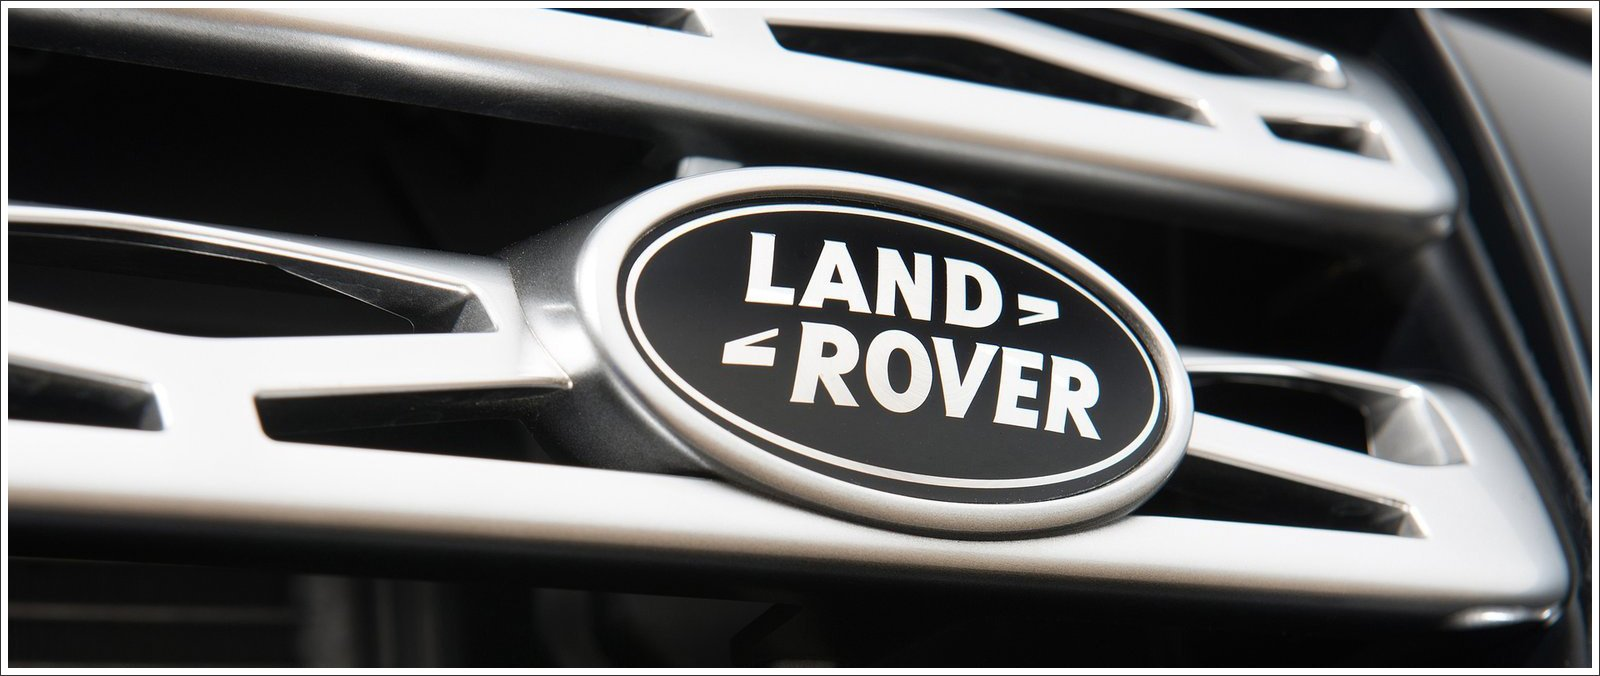 land rover logo meaning and history latest models world cars brands. Black Bedroom Furniture Sets. Home Design Ideas